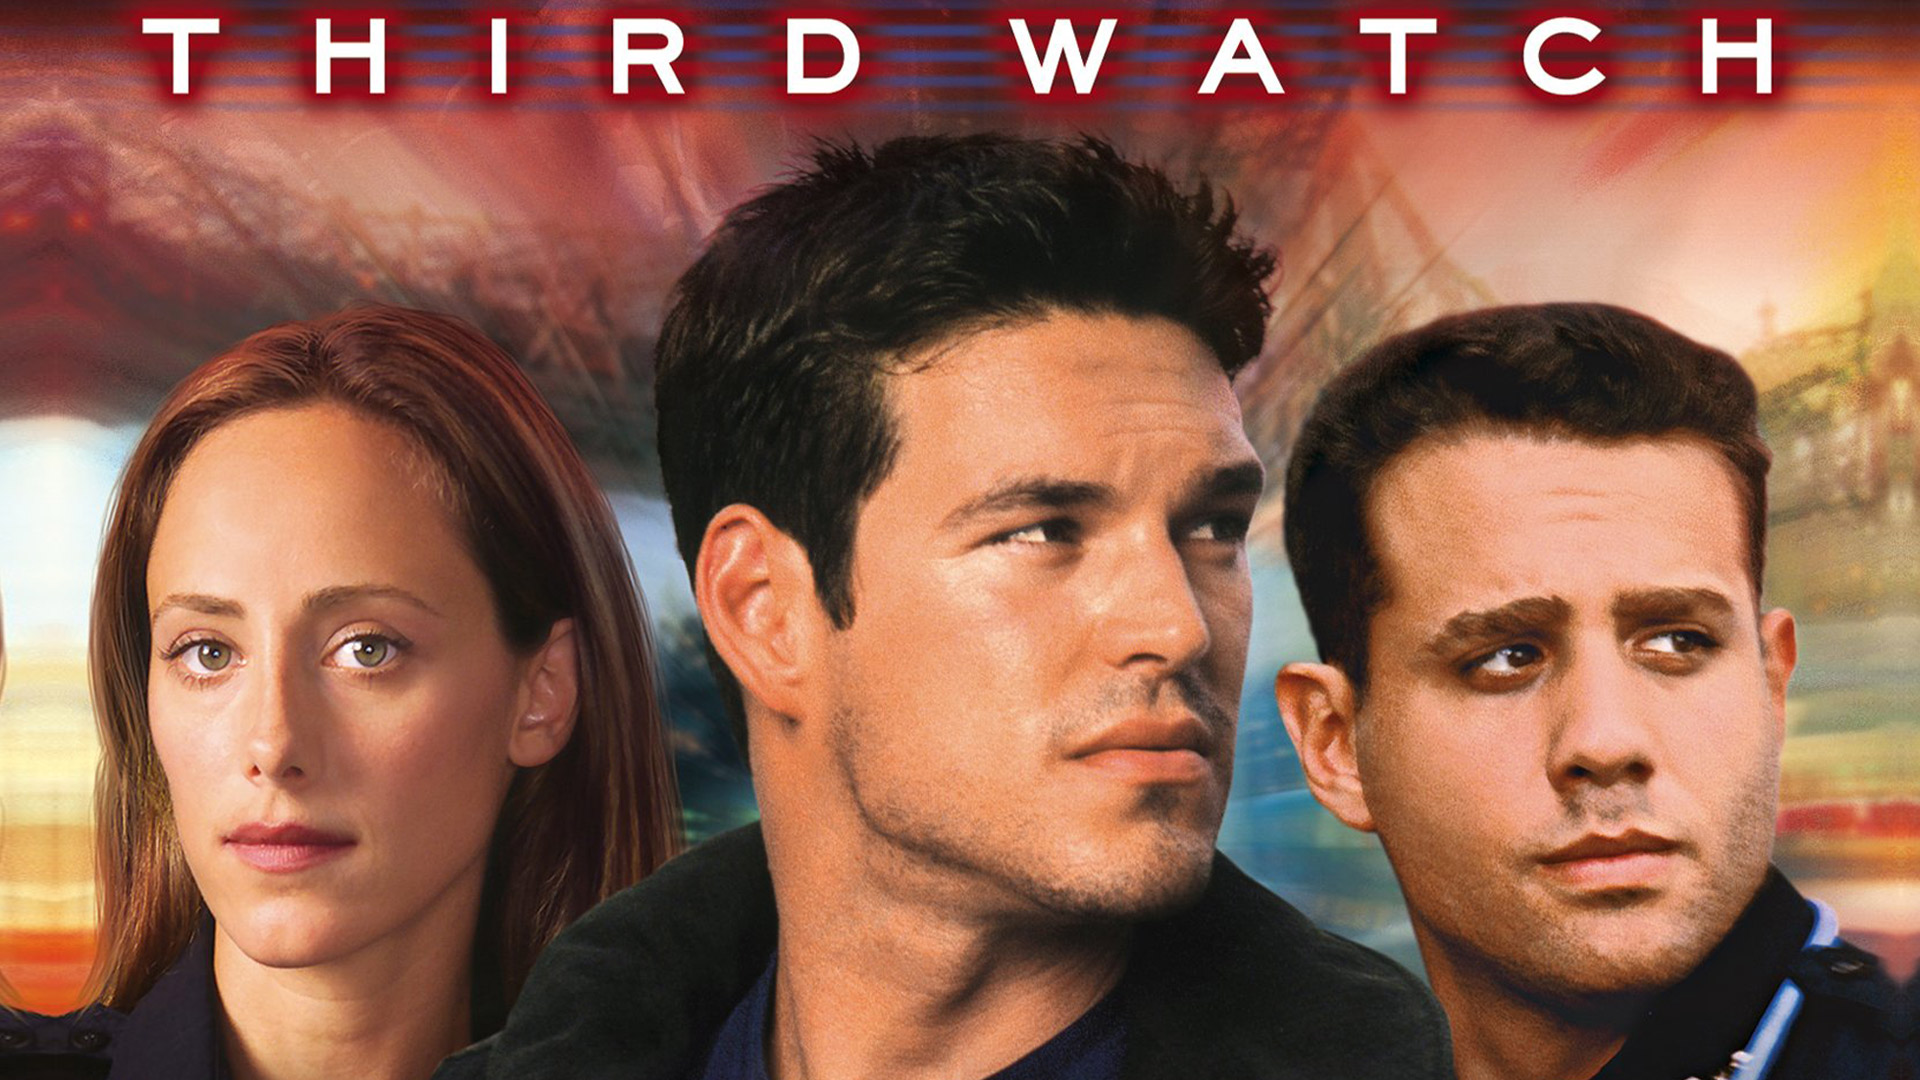 Third Watch: The Complete First Season